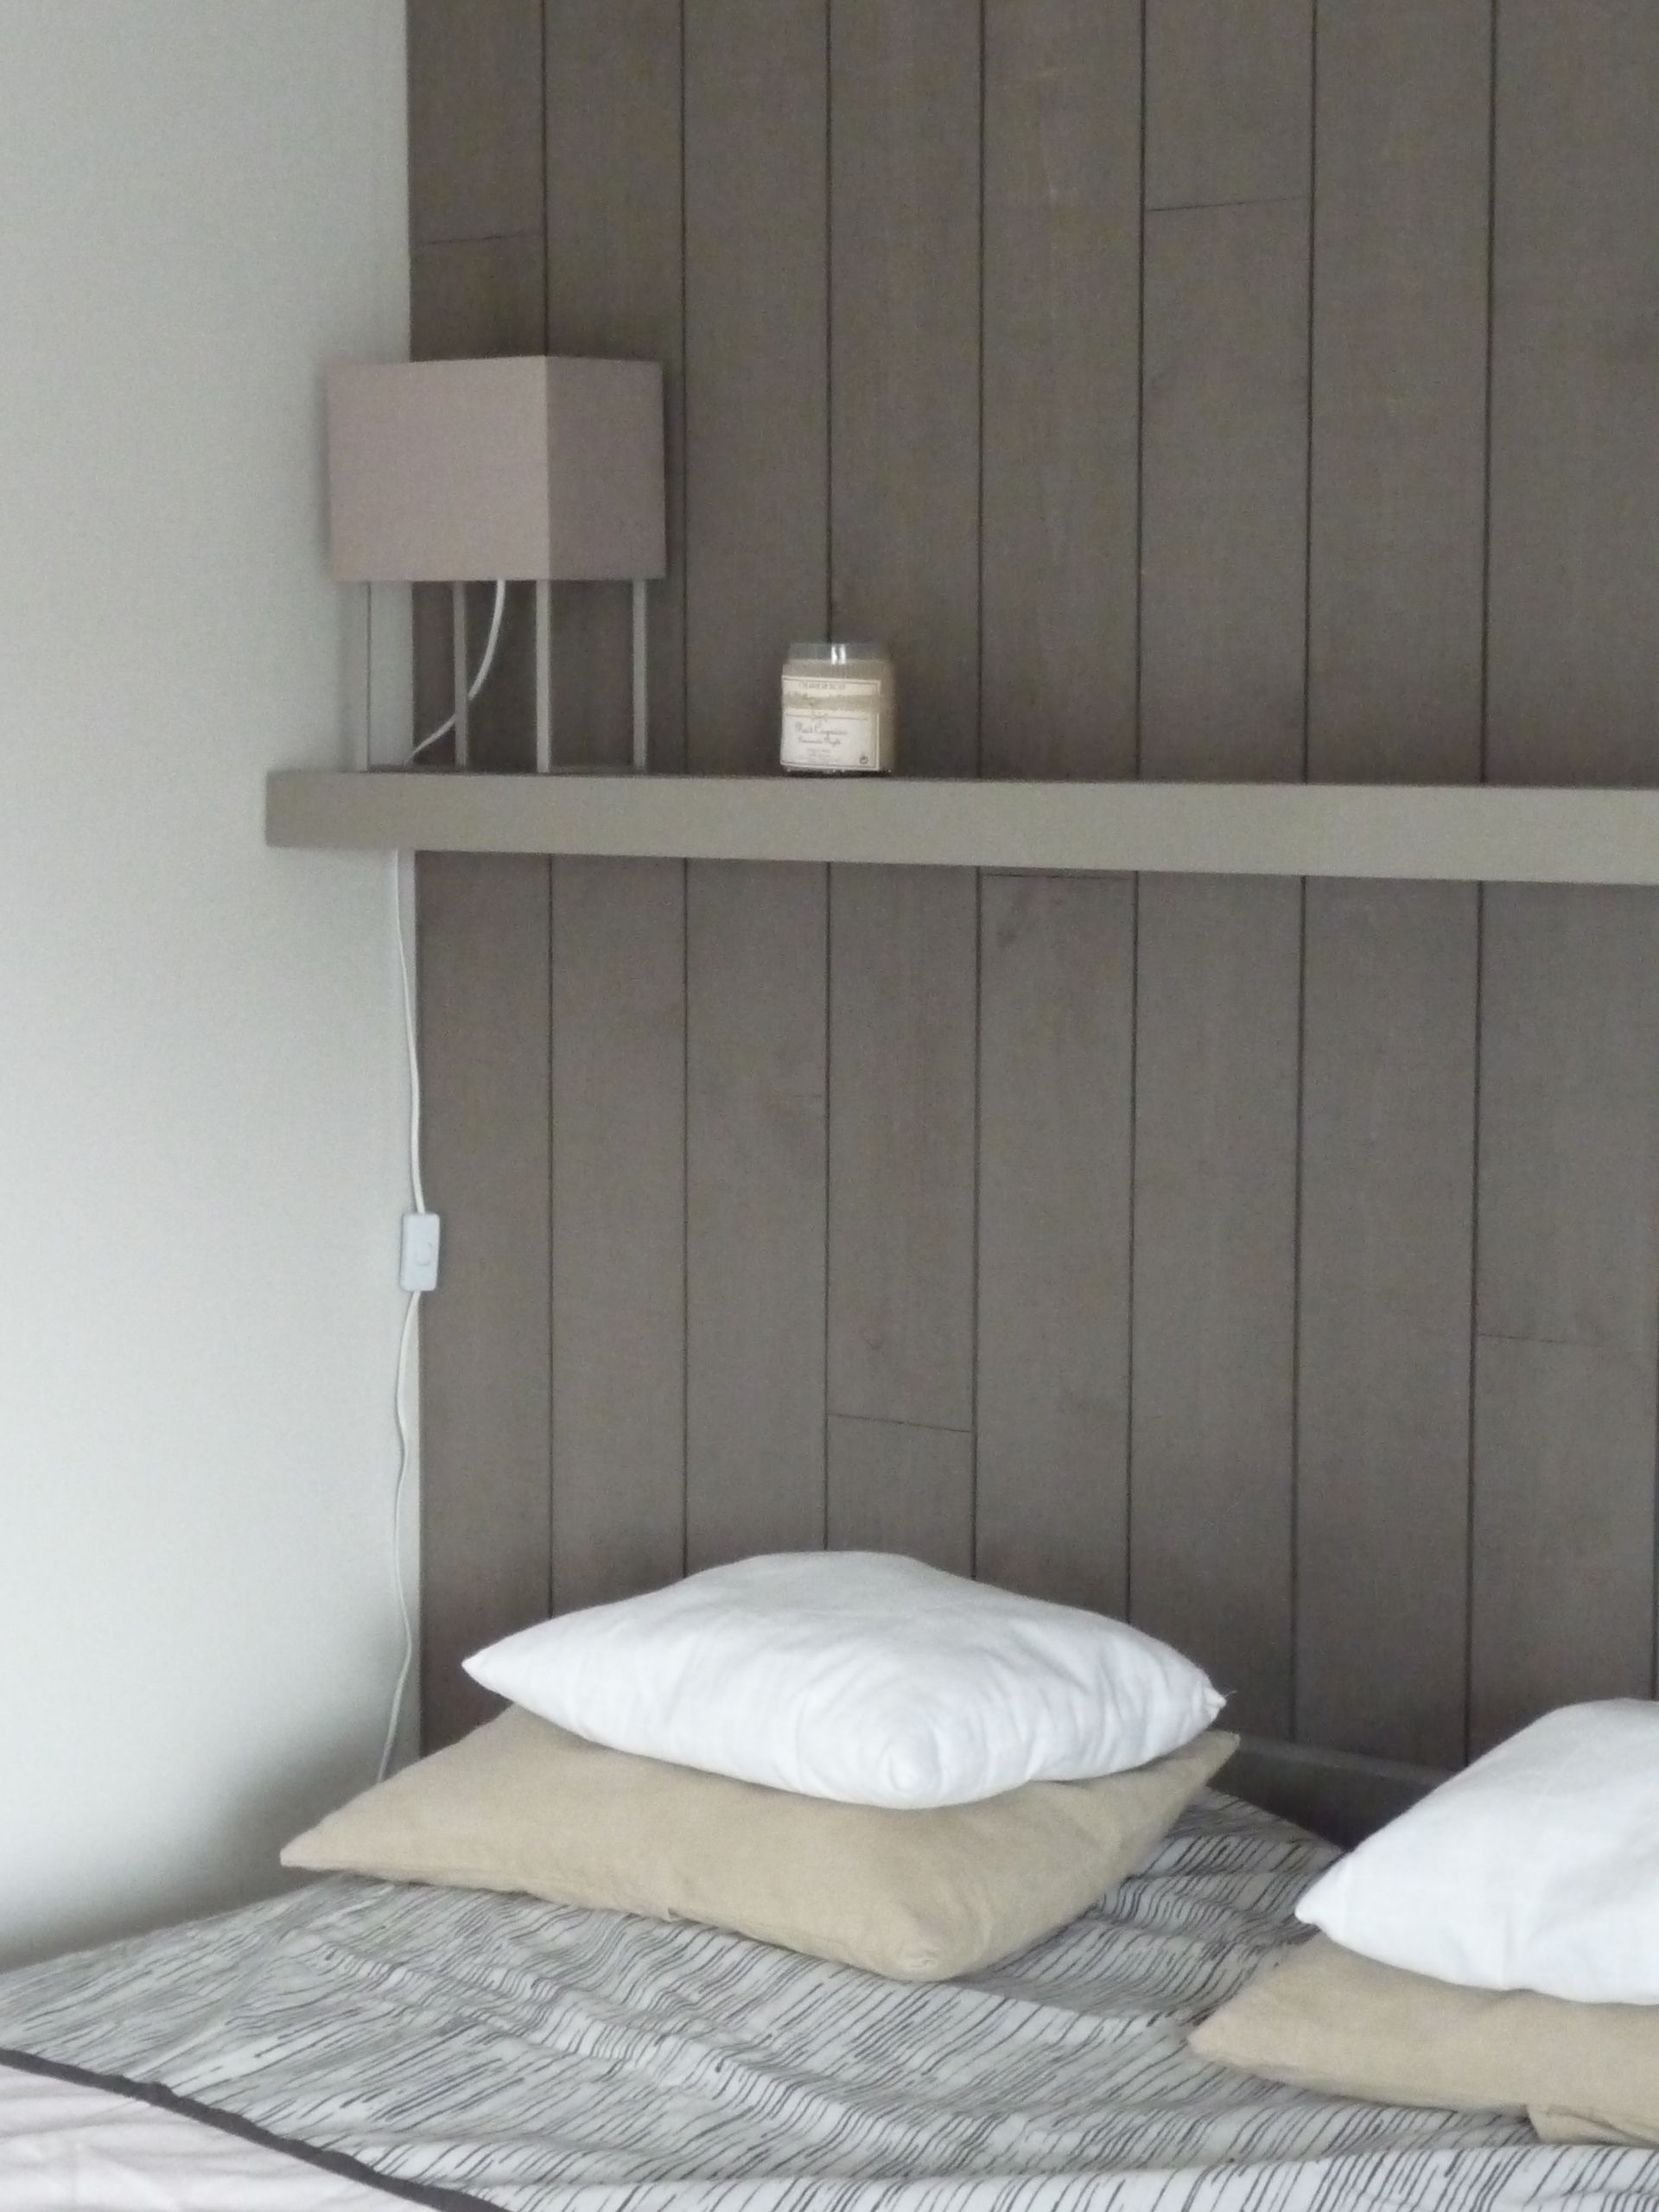 finition > lambris vertical peint | Chambre lambris | Pinterest ...